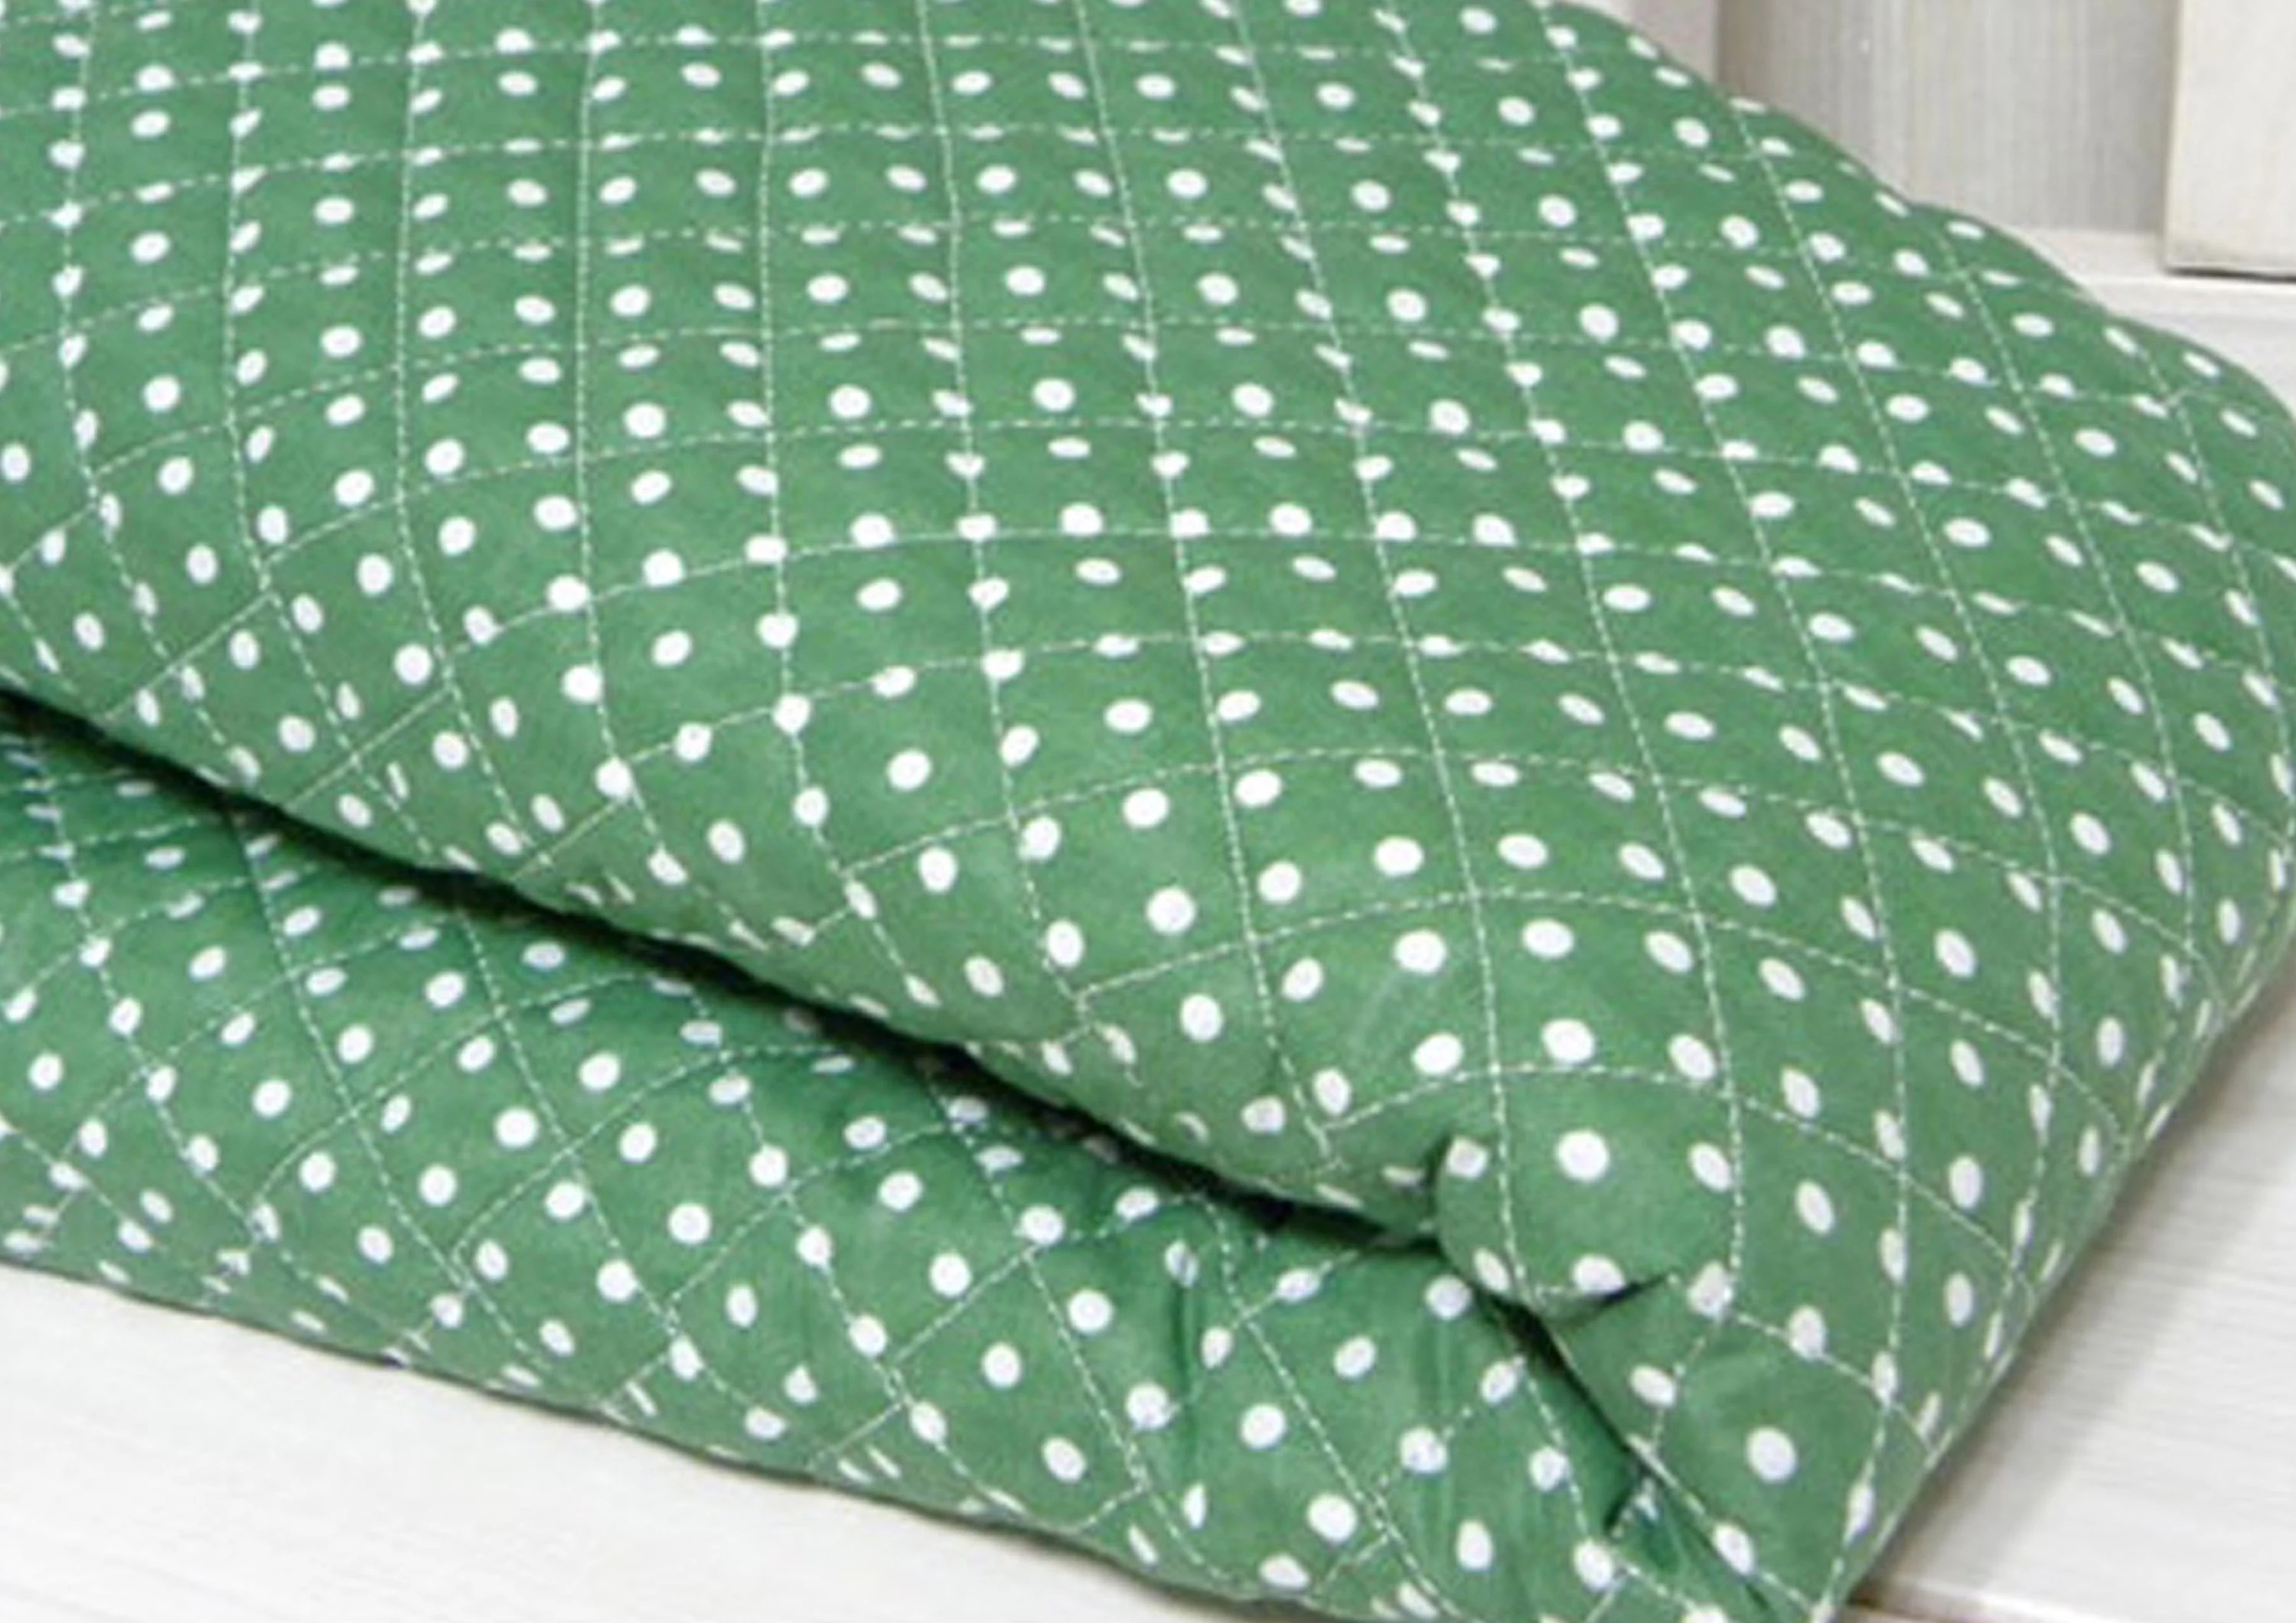 Quilted Fabric Green Back Ground Polka Dot Ready Quilted Fabric By The Yard Cotton Blend Polycotton Pre Quilted Padded Yk Fabrics Jq40